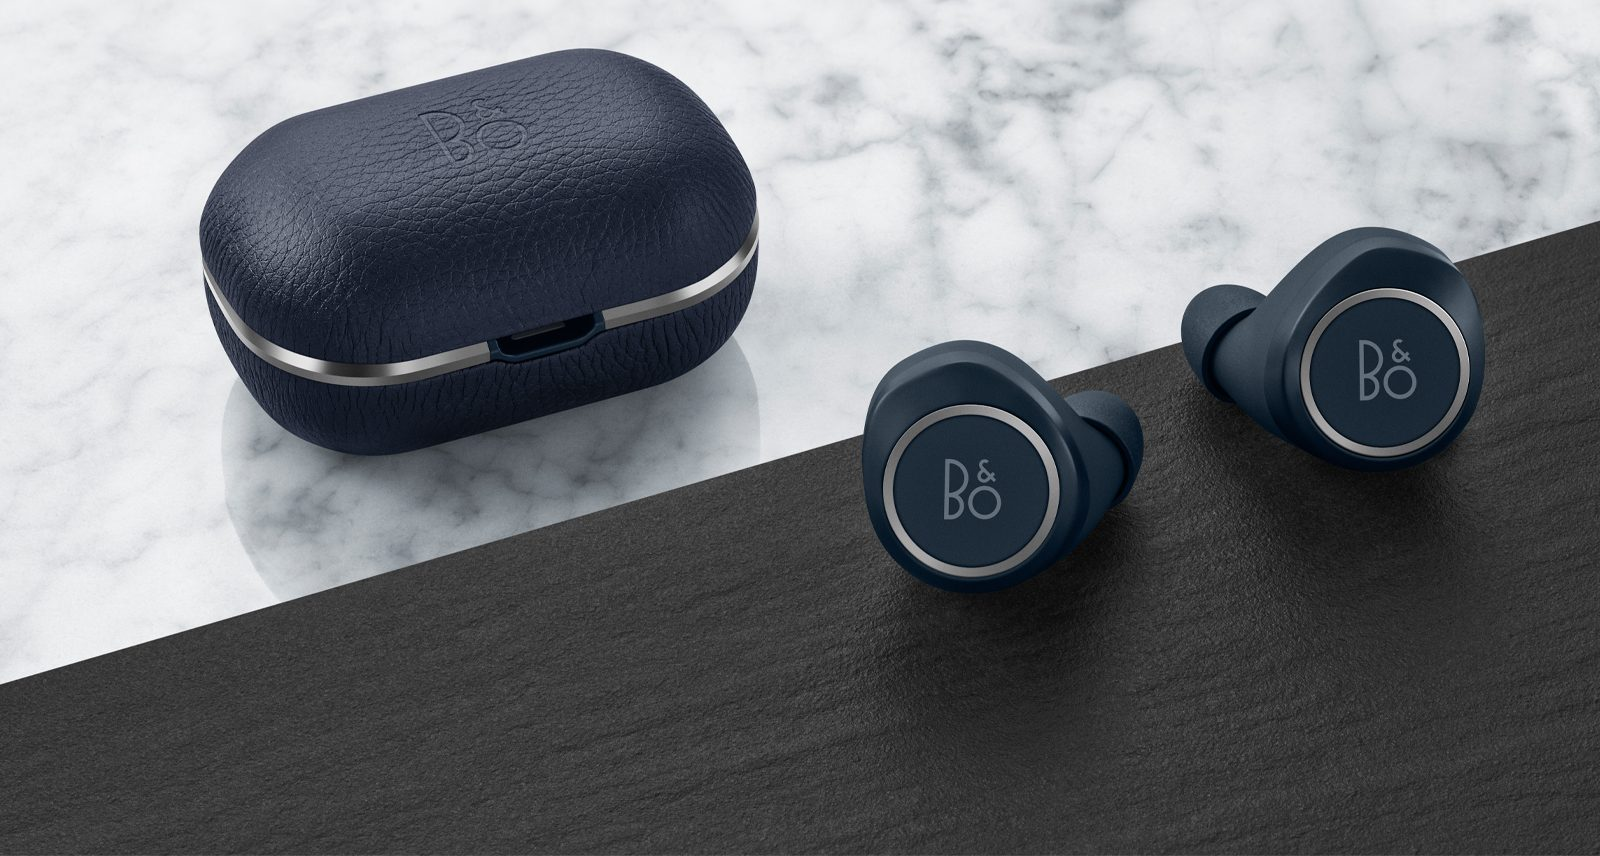 The Best Wireless Earbuds That'll Make Your Commute Bearable